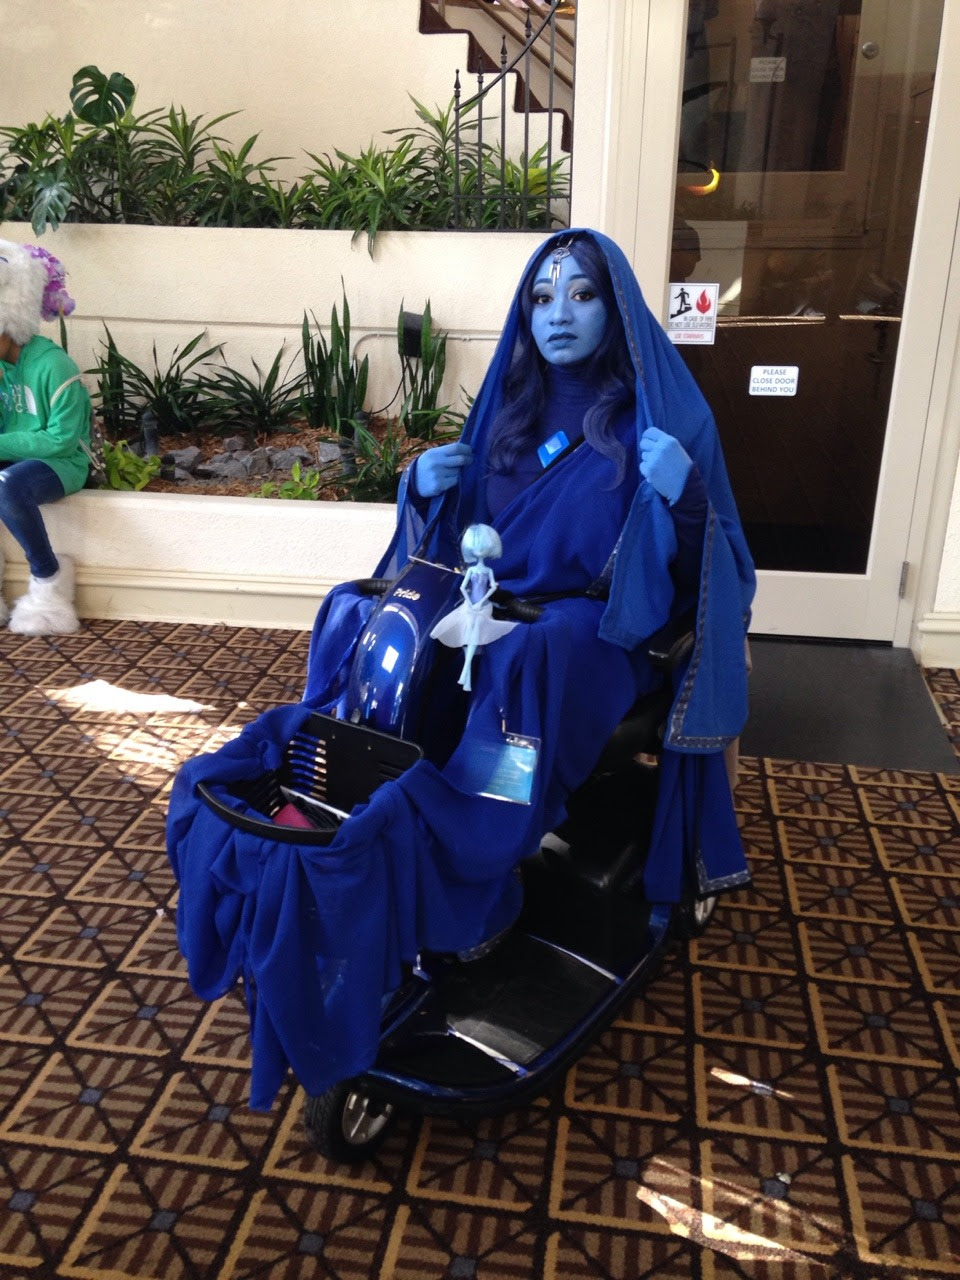 I loved this blue diamond's cosplay so much!